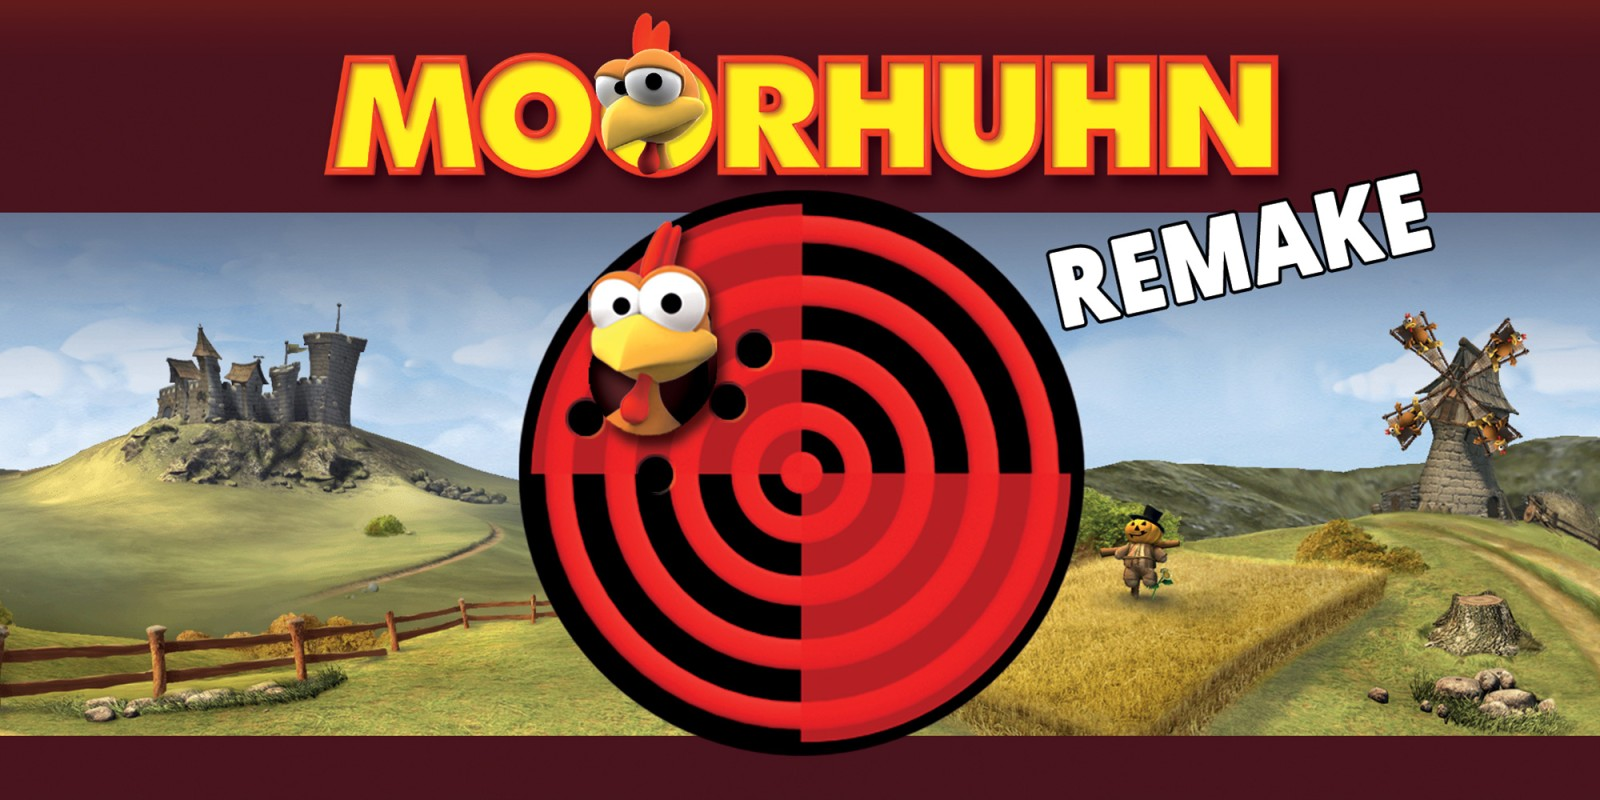 Moorhuhn Remake Windows 10